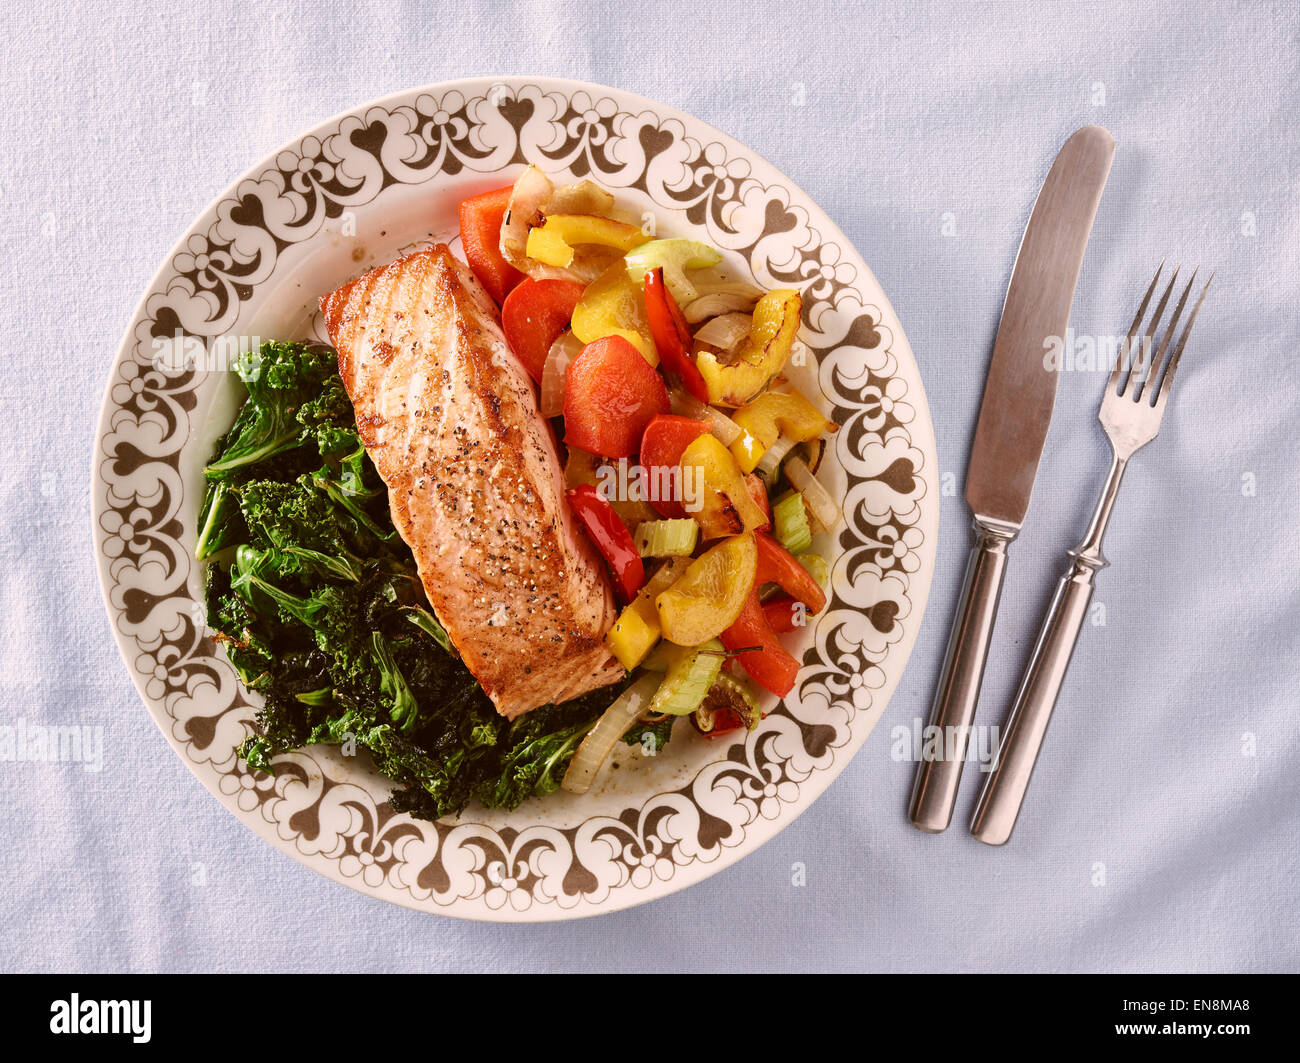 Food On Dinner Plate Roast Salmon And Crispy Kale Other Vegetables